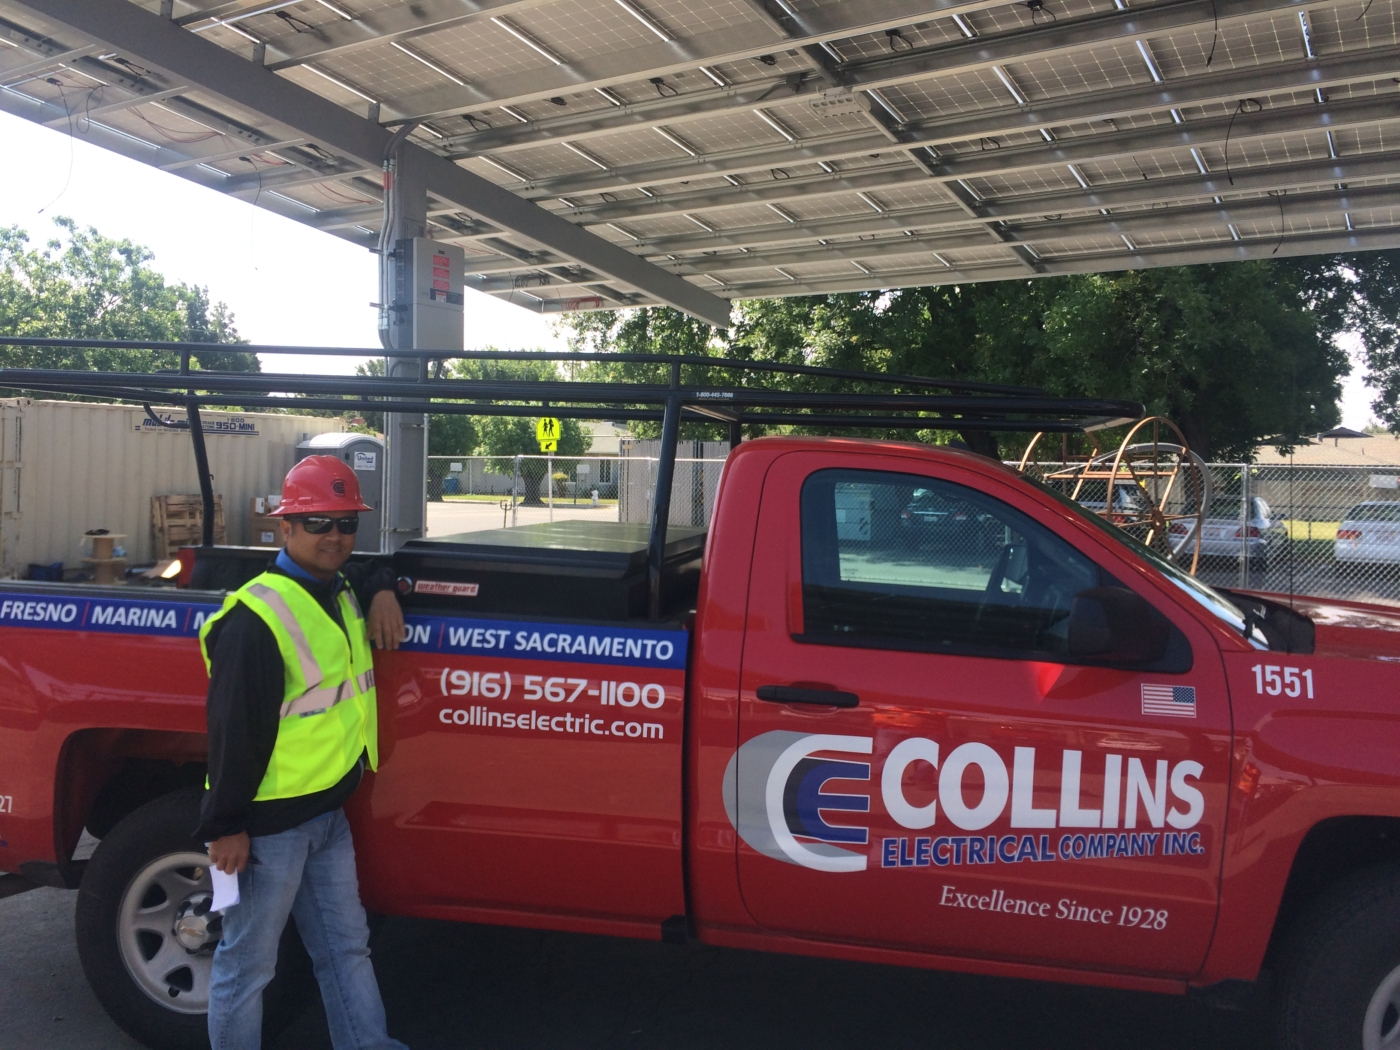 Live, Work, and Play in the Valley – Collins Electrical